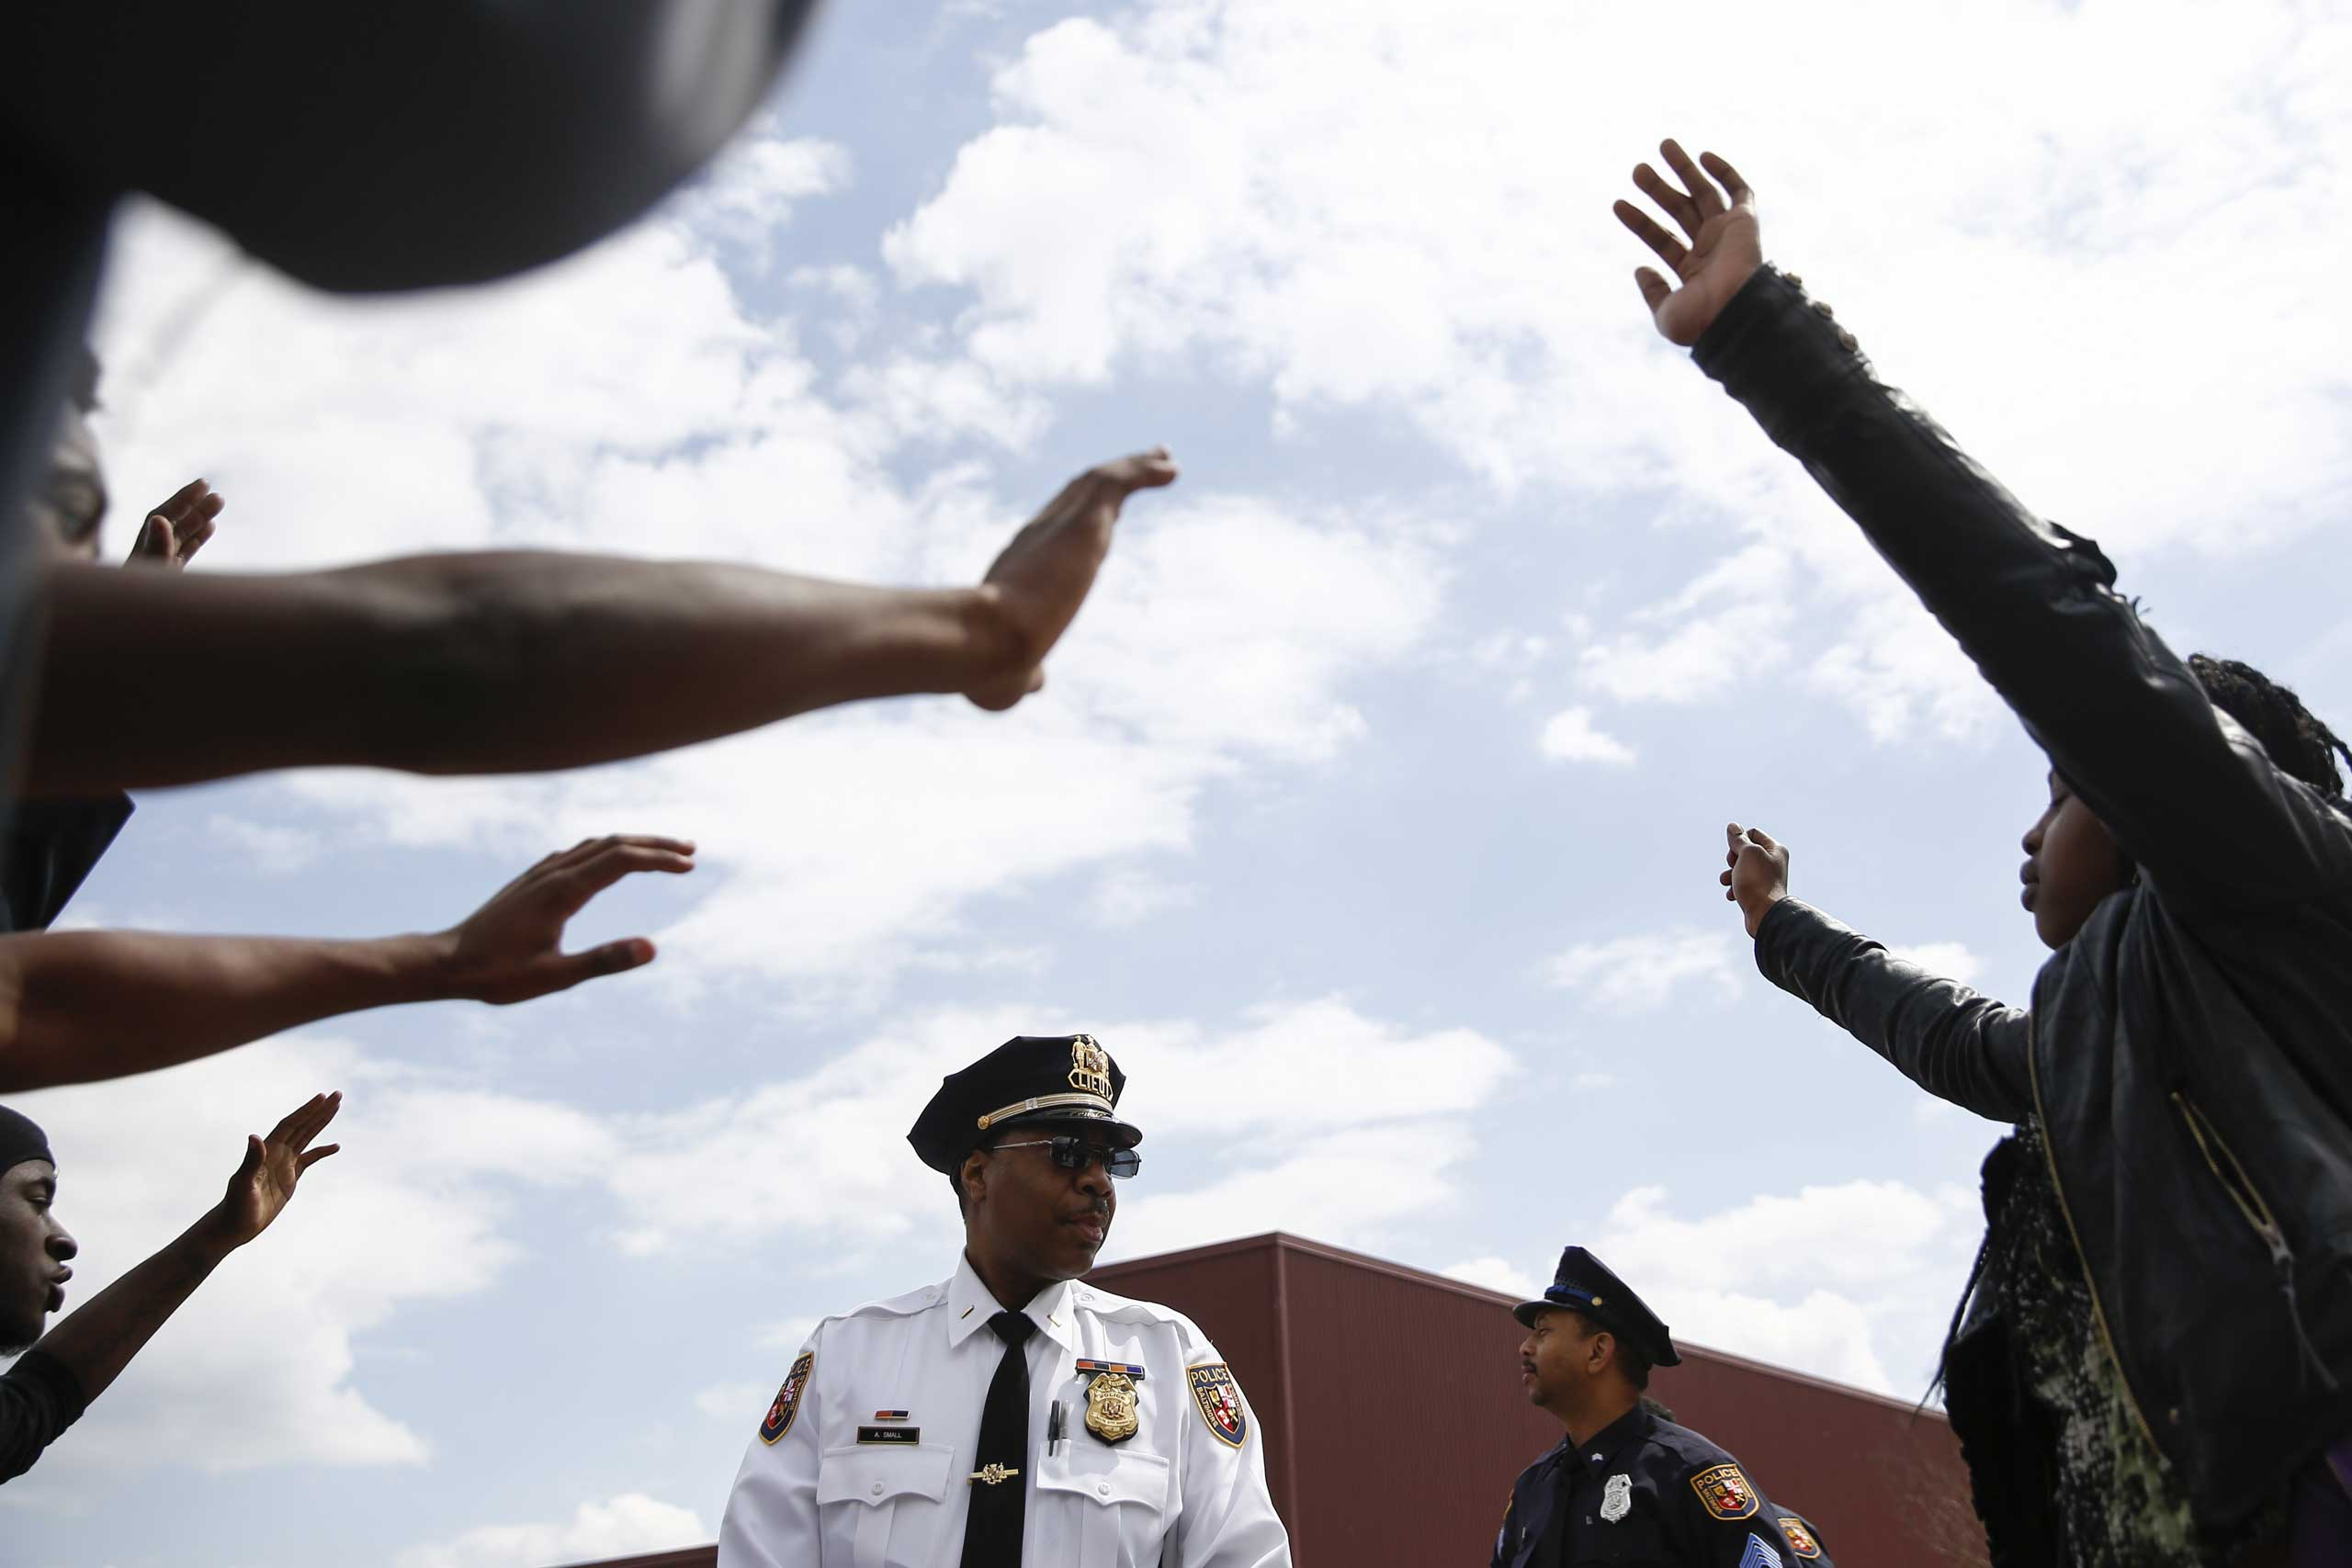 Protesters surround a police officer near Mondawmin Mall in Baltimore on April 27, 2015.